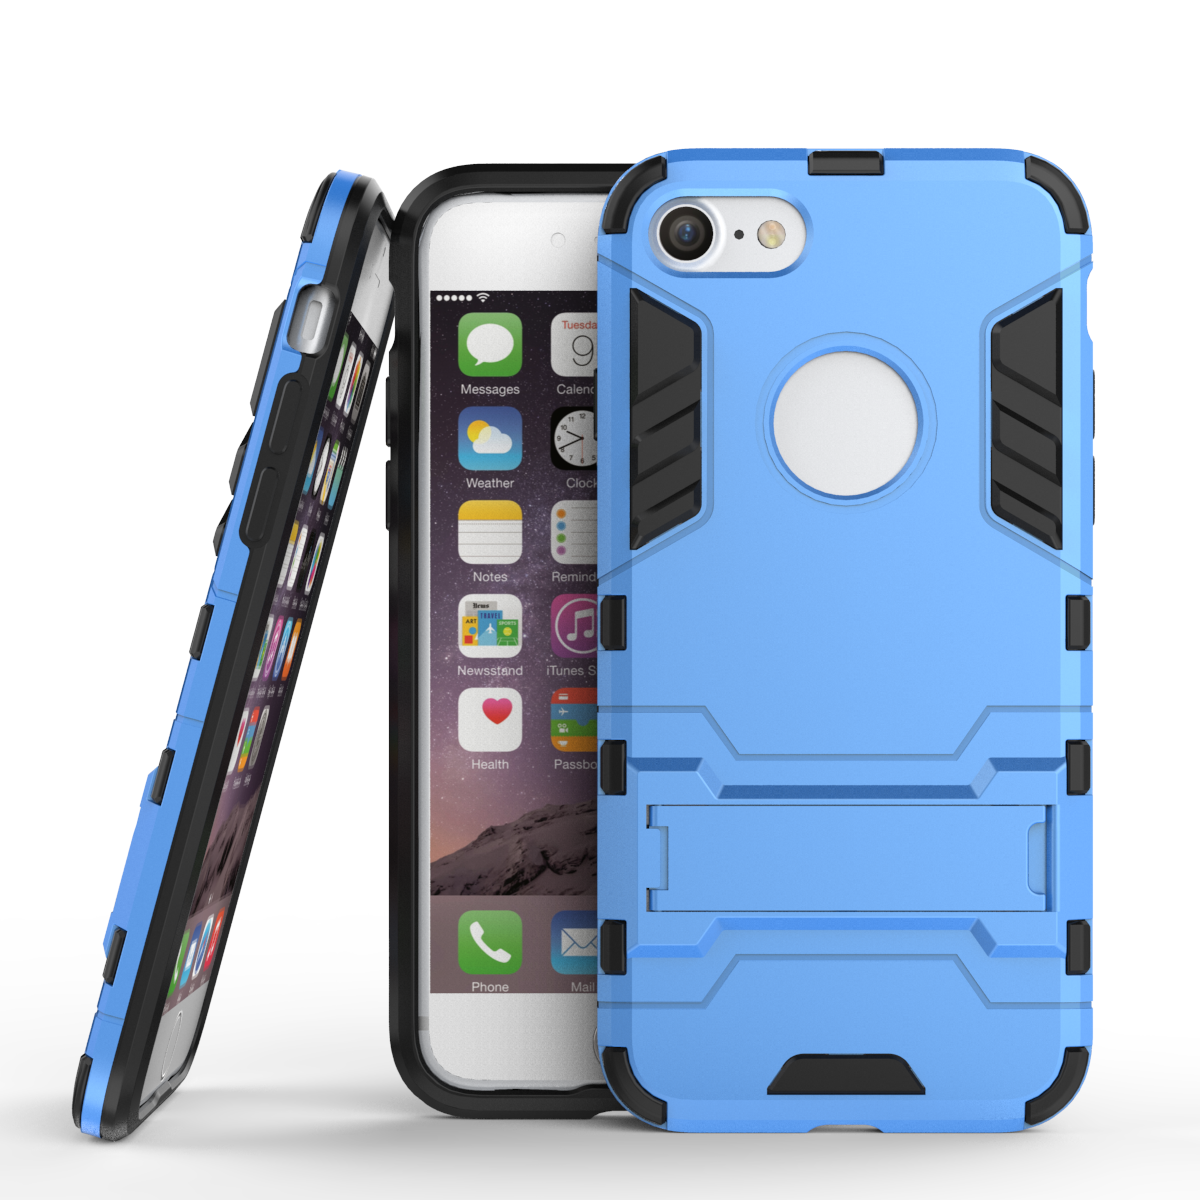 Slim armor shockproof kickstand protective case for iphone 7 4 7inch blue p20160907134050375